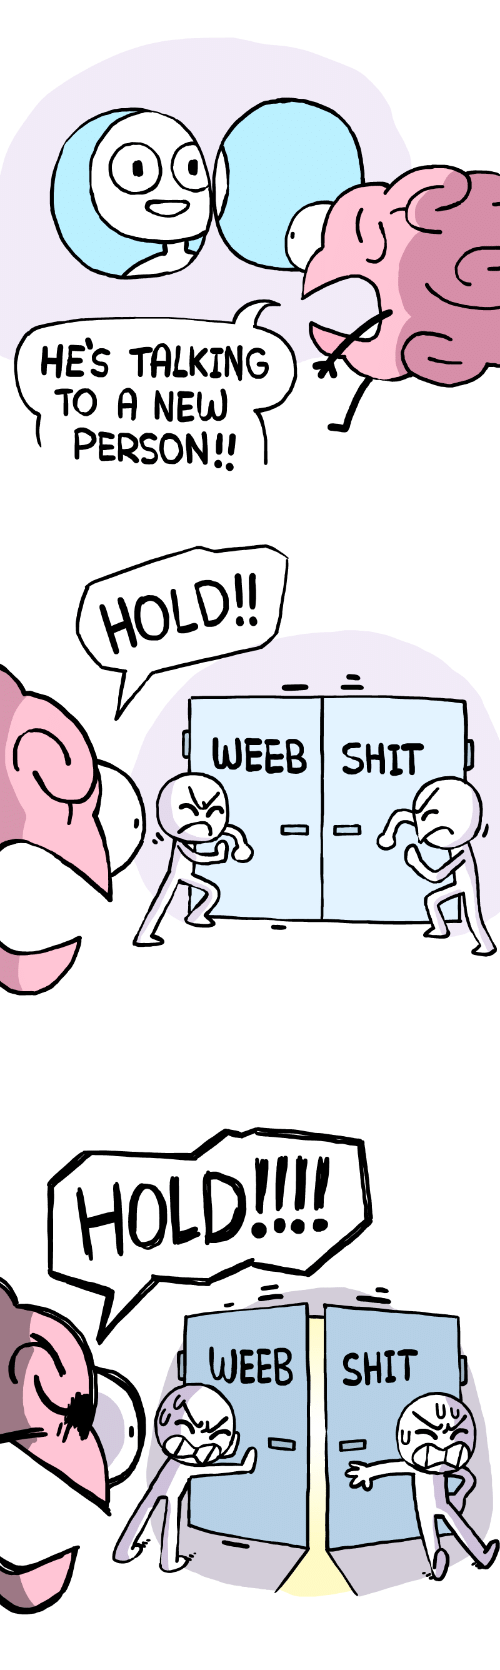 Shit, Person, and Hold: HEs TALKING  TO A NEUW  PERSON!!   HOLD/  WEEB SHIT   HoLD!!  dWEEB SHIT  Uu